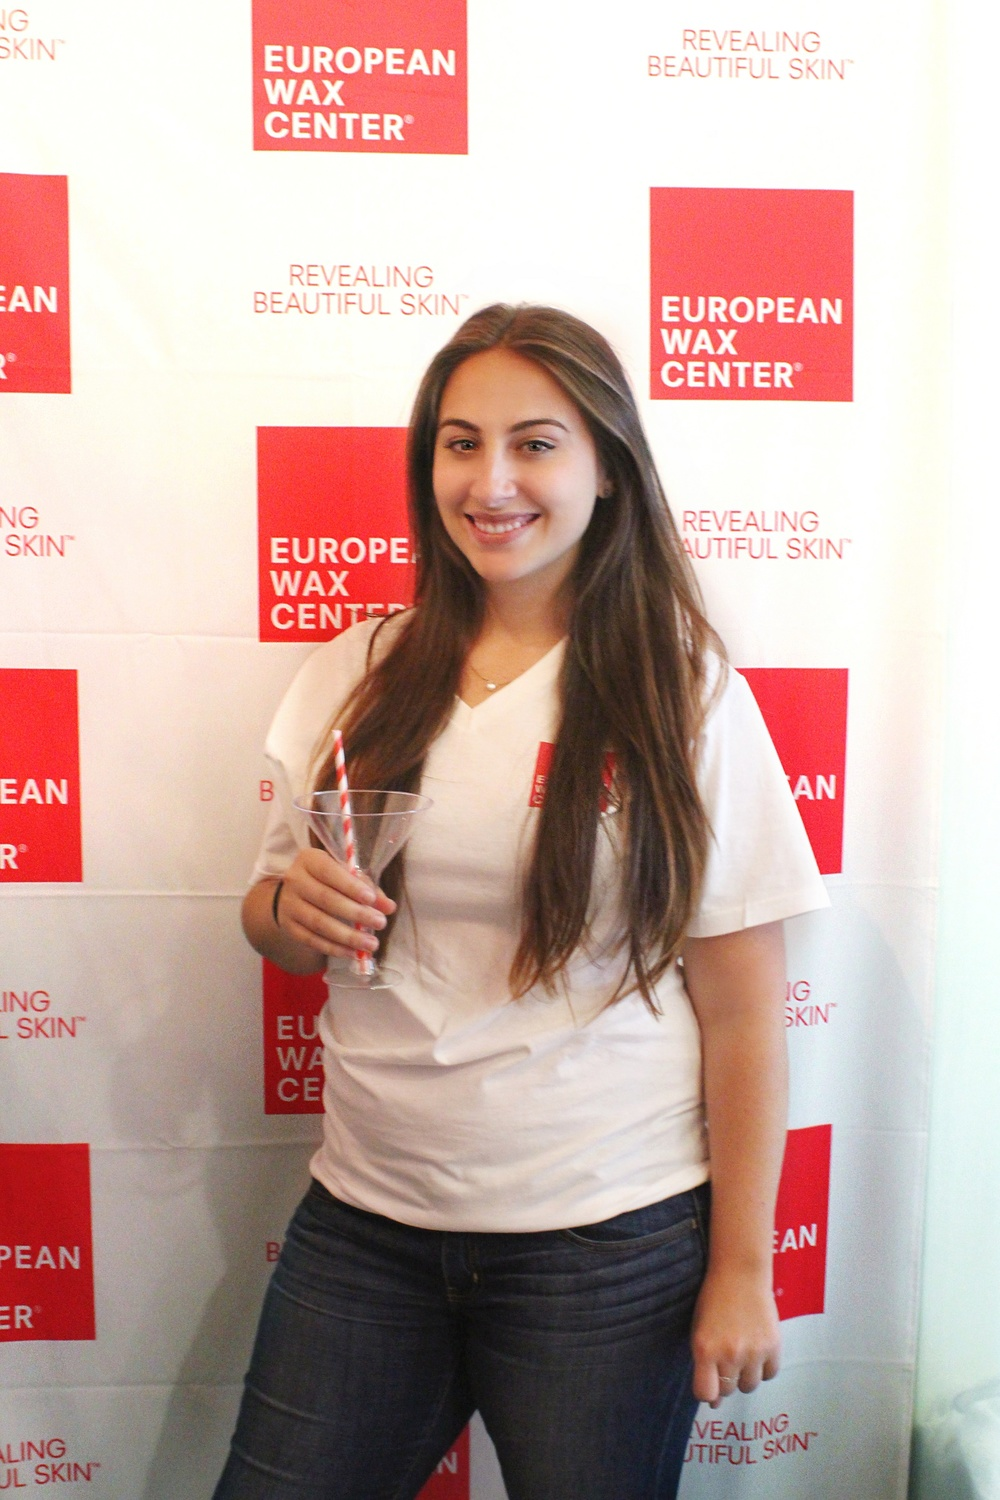 11.14.2014 HerCampus European Wax Center083b.JPG